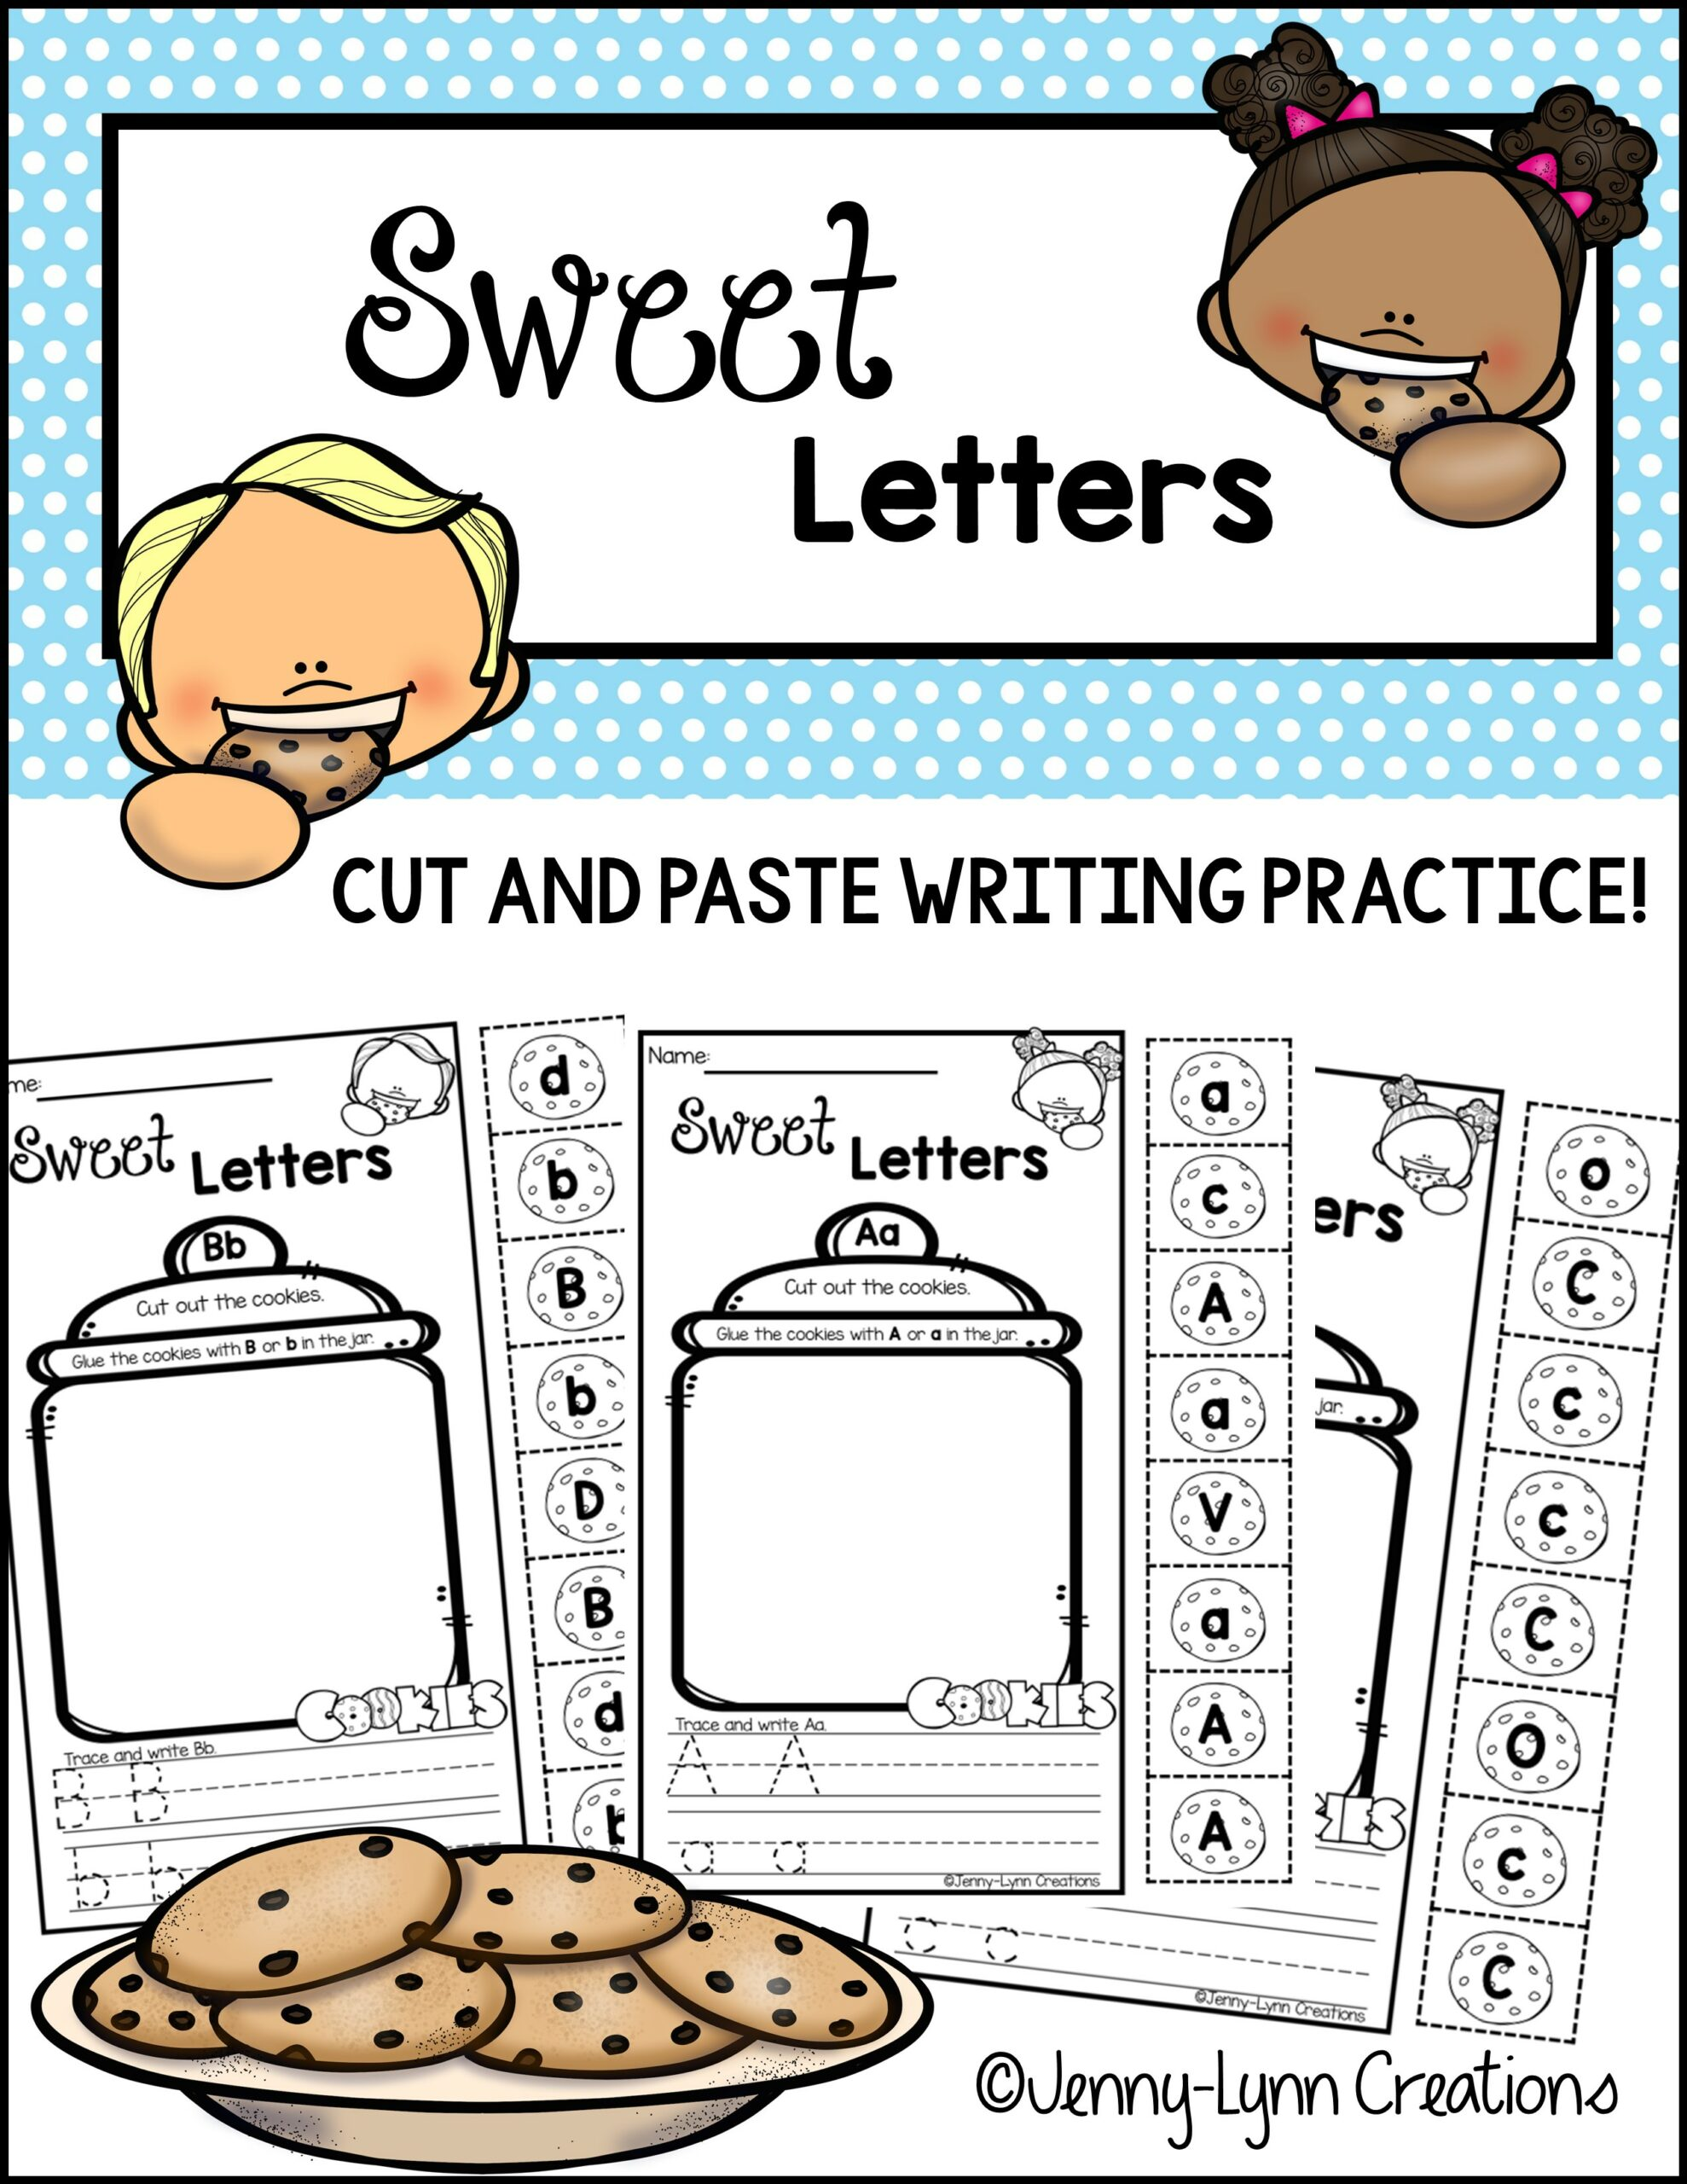 Downloadable Letter Teaching Resources